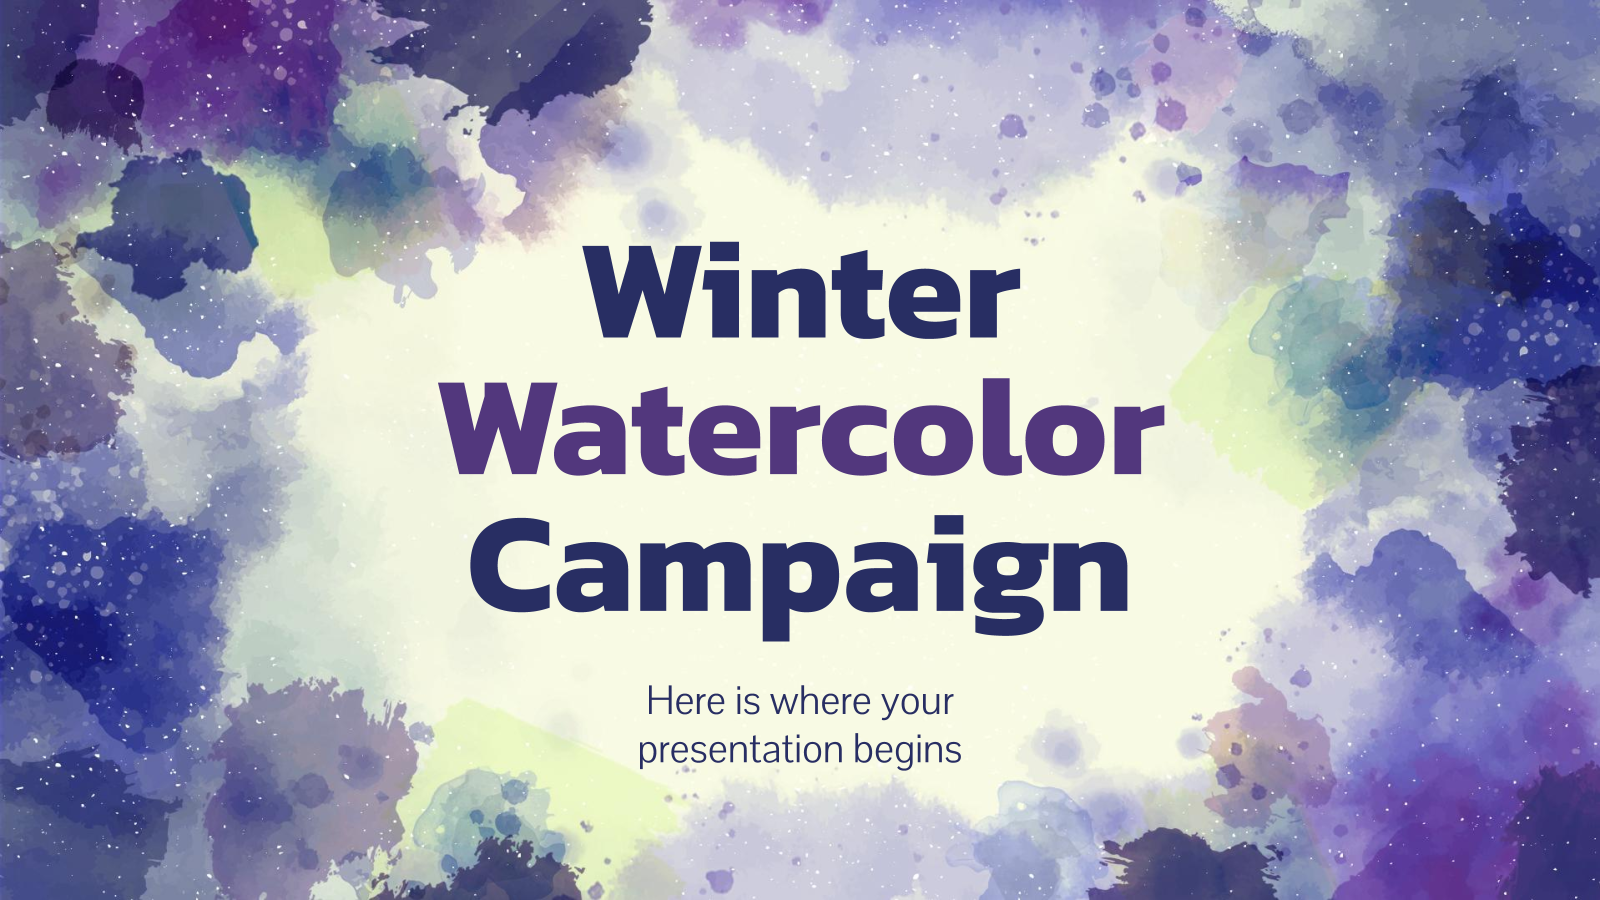 Winter Watercolor Campaign presentation template